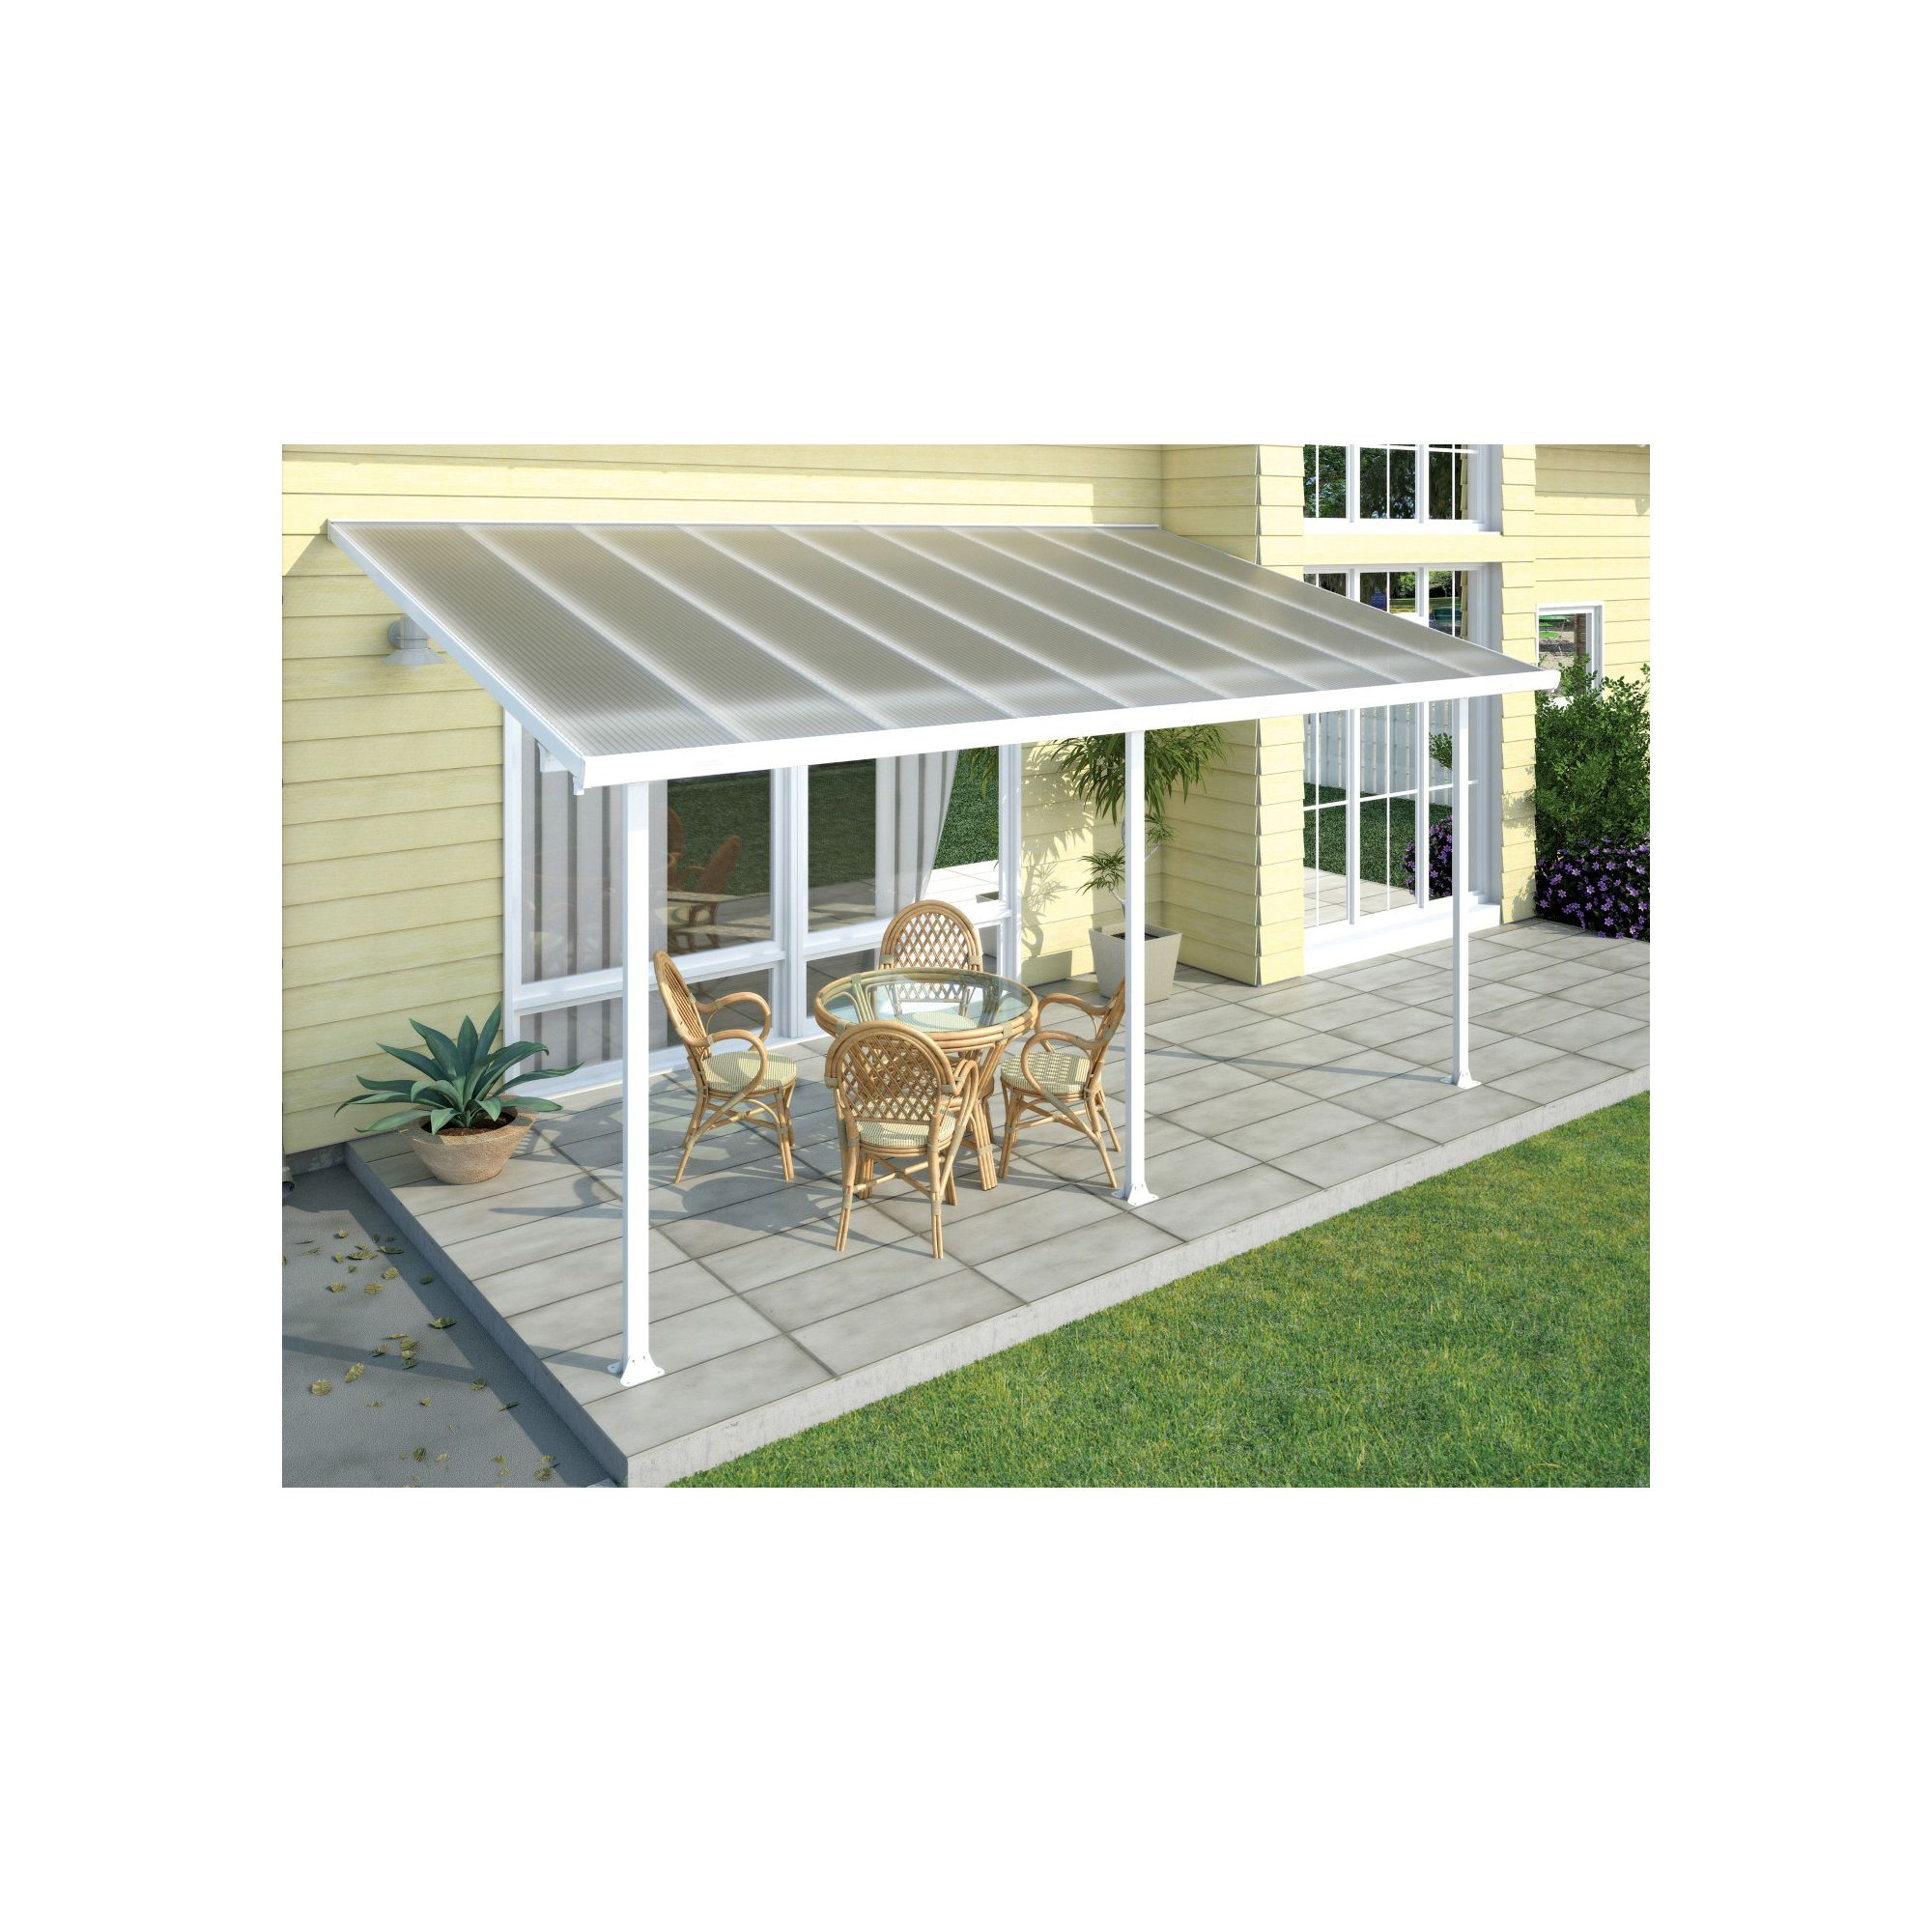 FERIA LEAN TO CARPORT AND PATIO COVER 4X12.76 WHITE at Tesco Direct